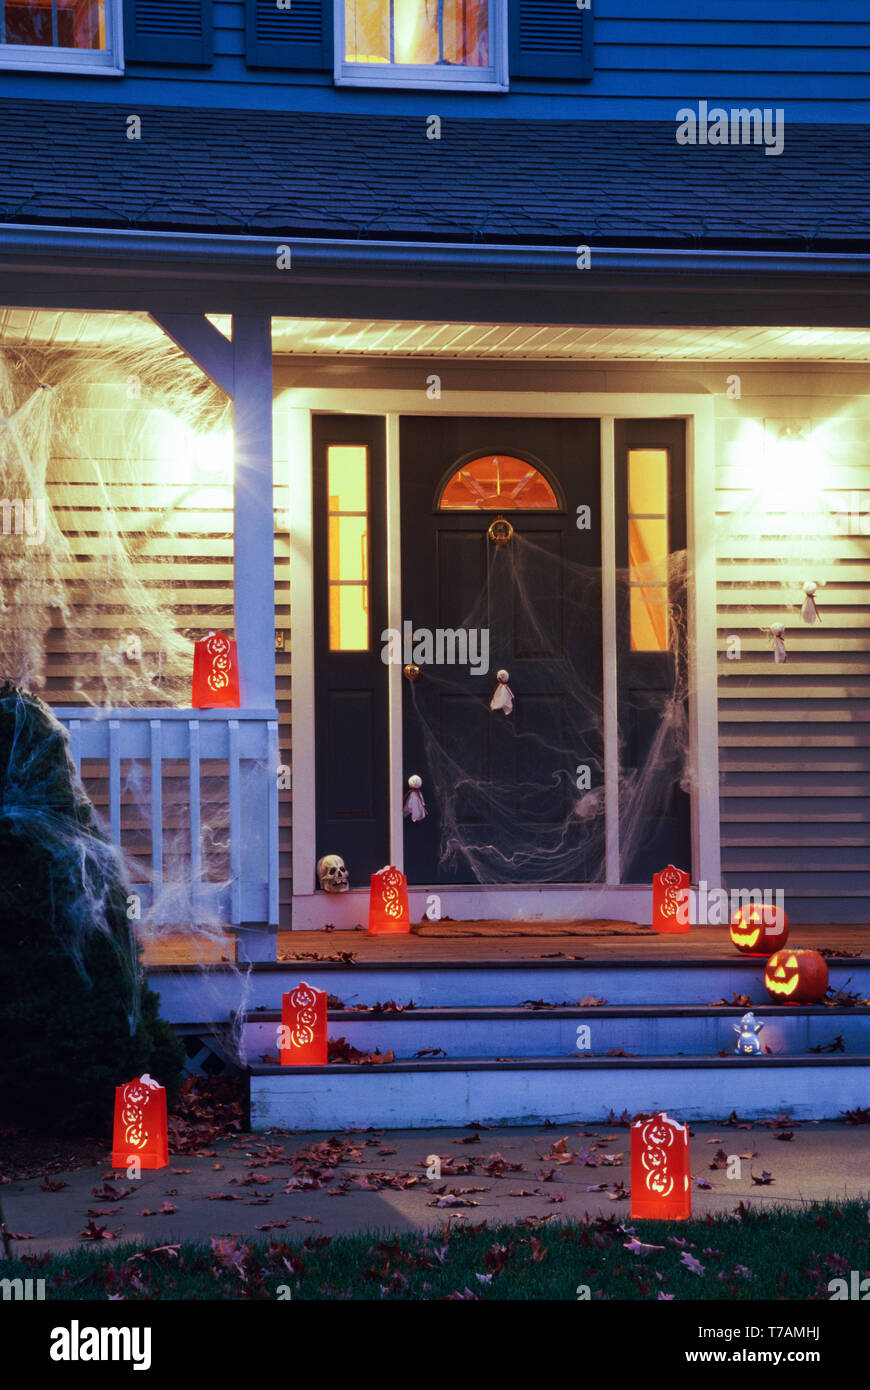 Residential Home has Halloween Decorations on the Front